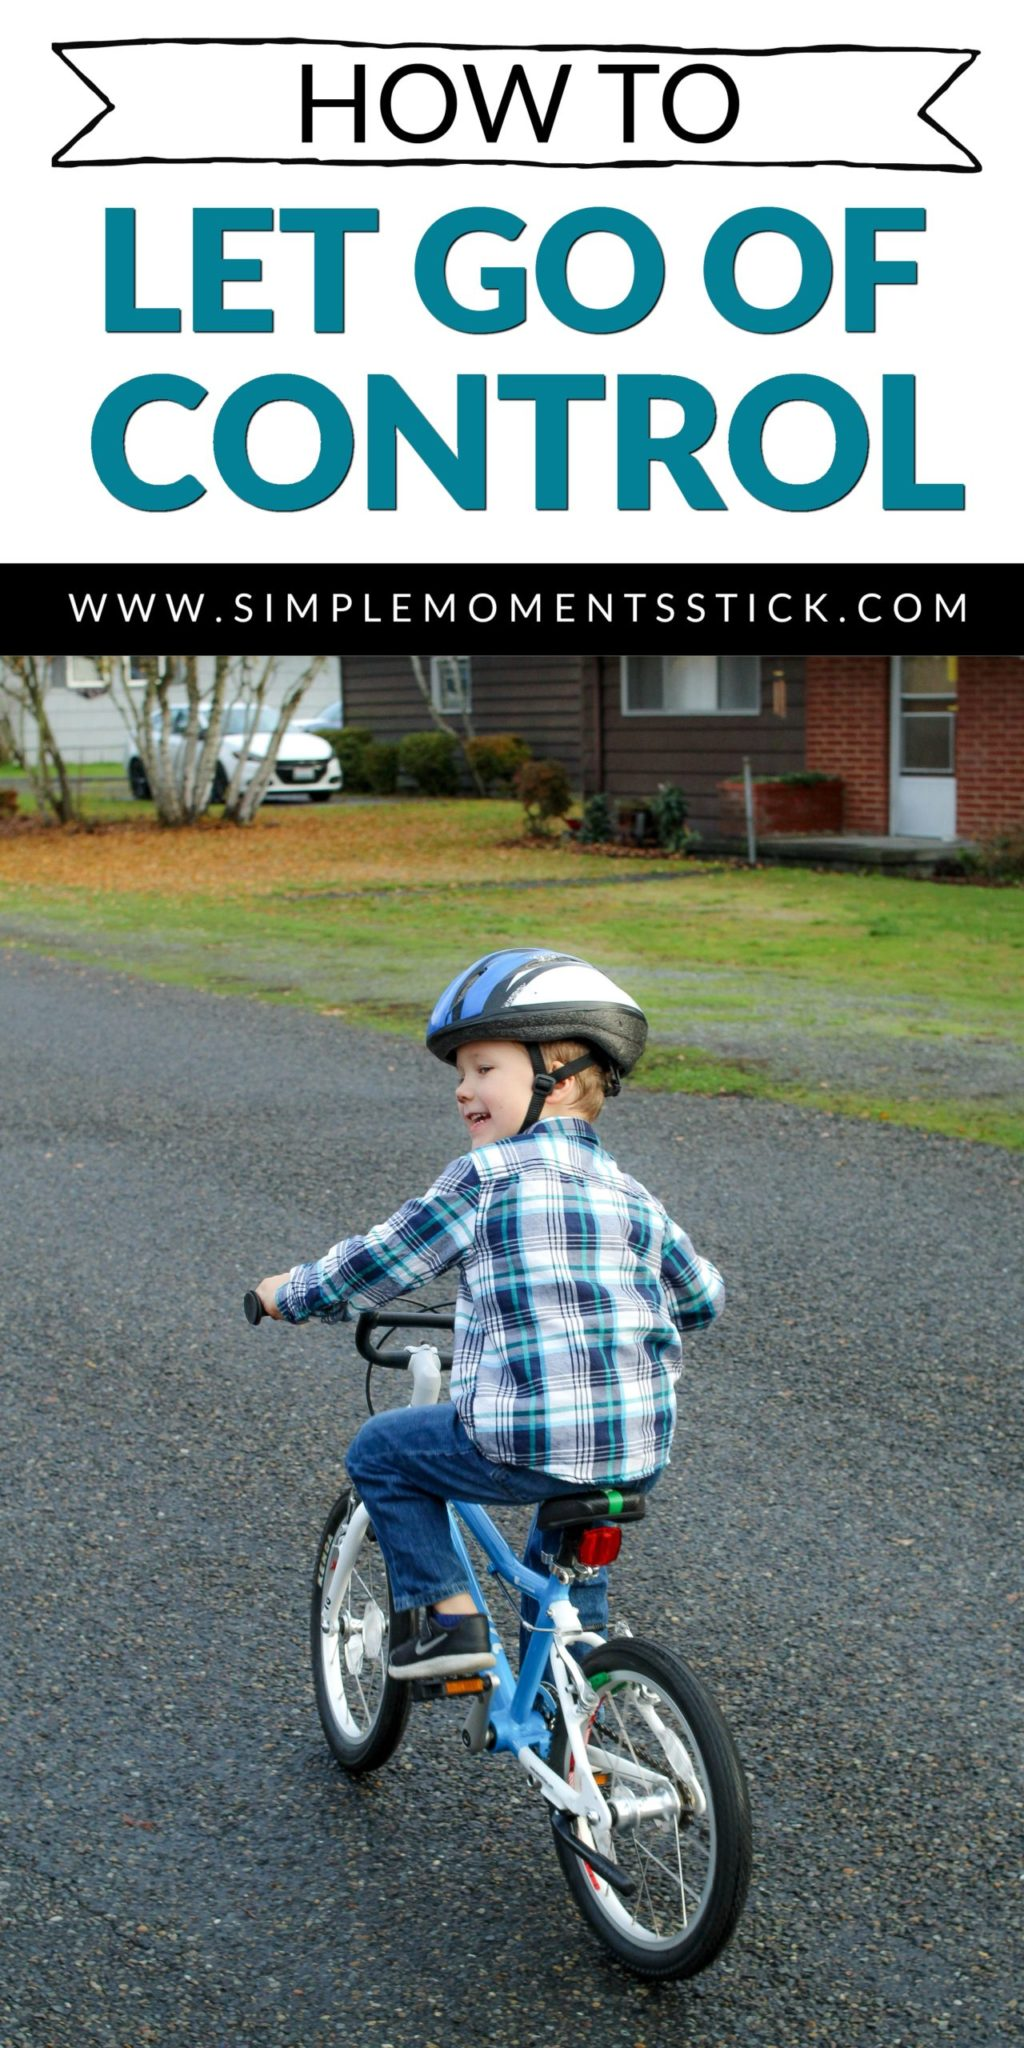 How to ride a bike. How to start riding a bike. Learning to ride a bike